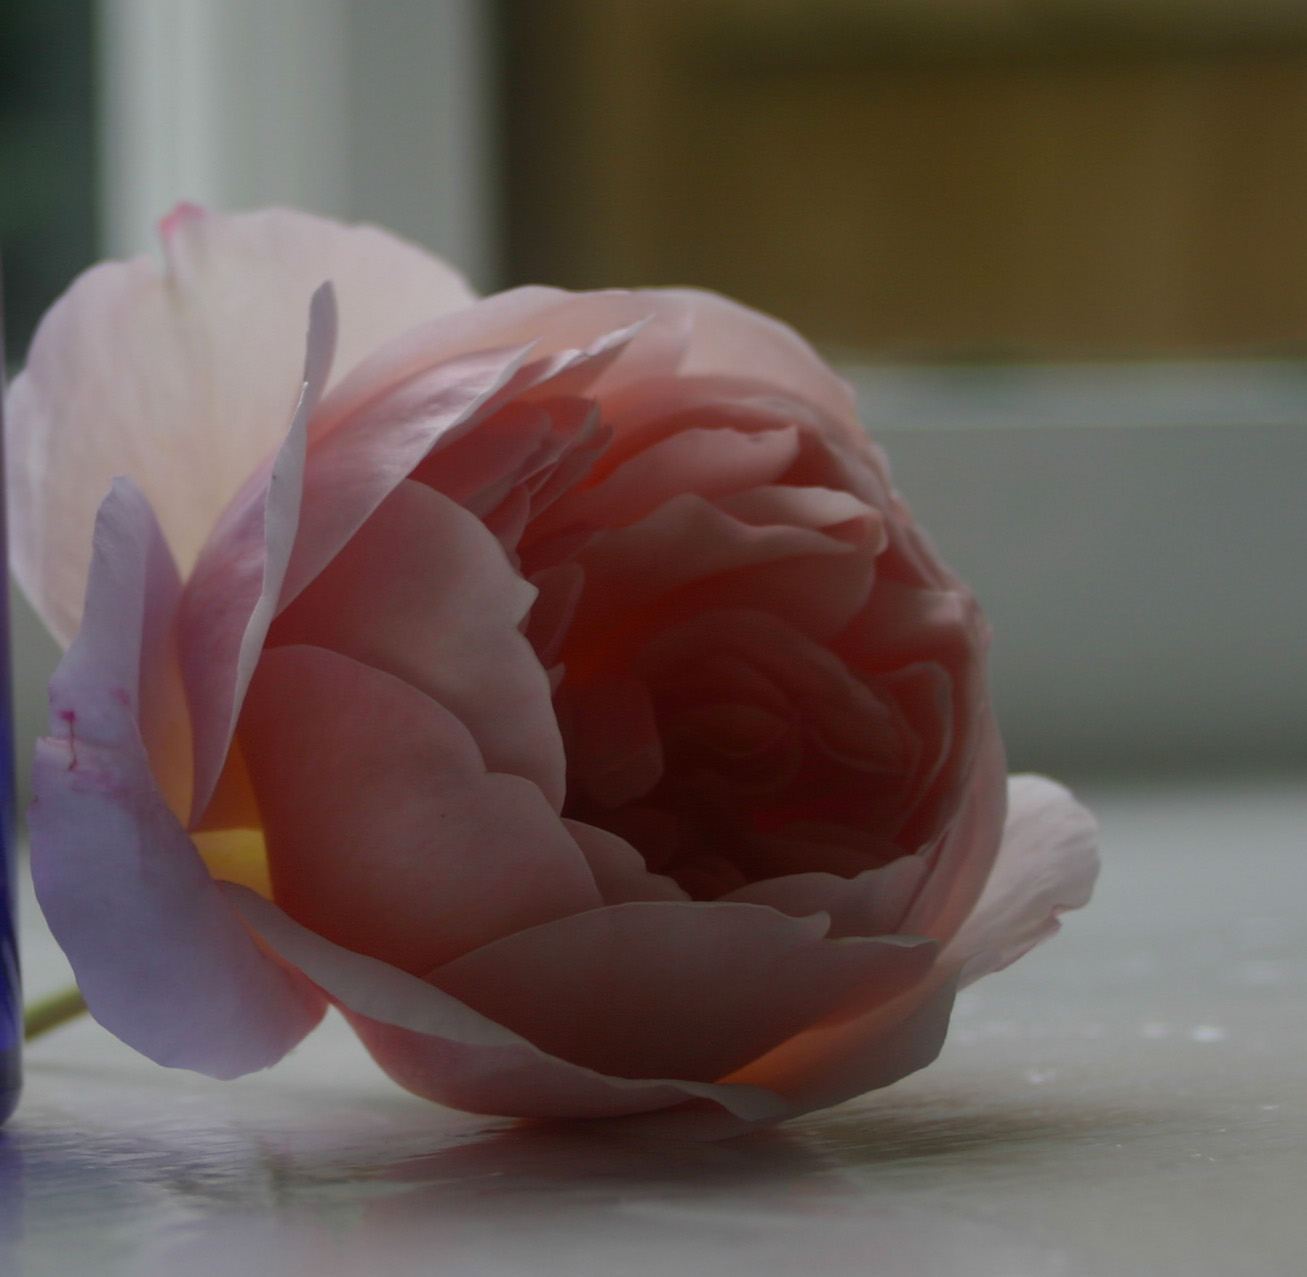 Eternal Youth - The Power of the Rose?